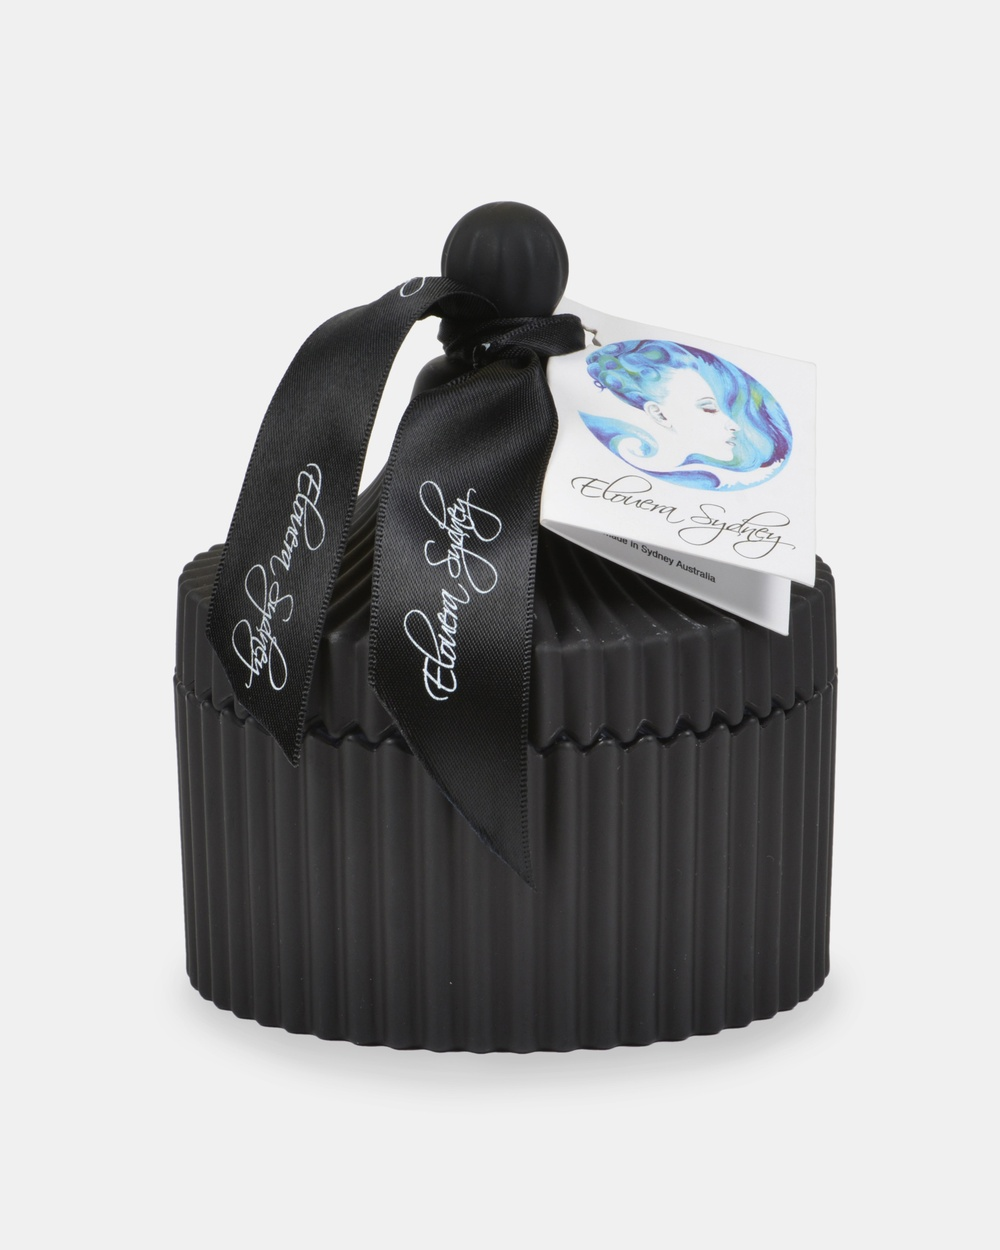 Elouera Sydney Lychee and Peony Matte Black Carousel Candle Candles White